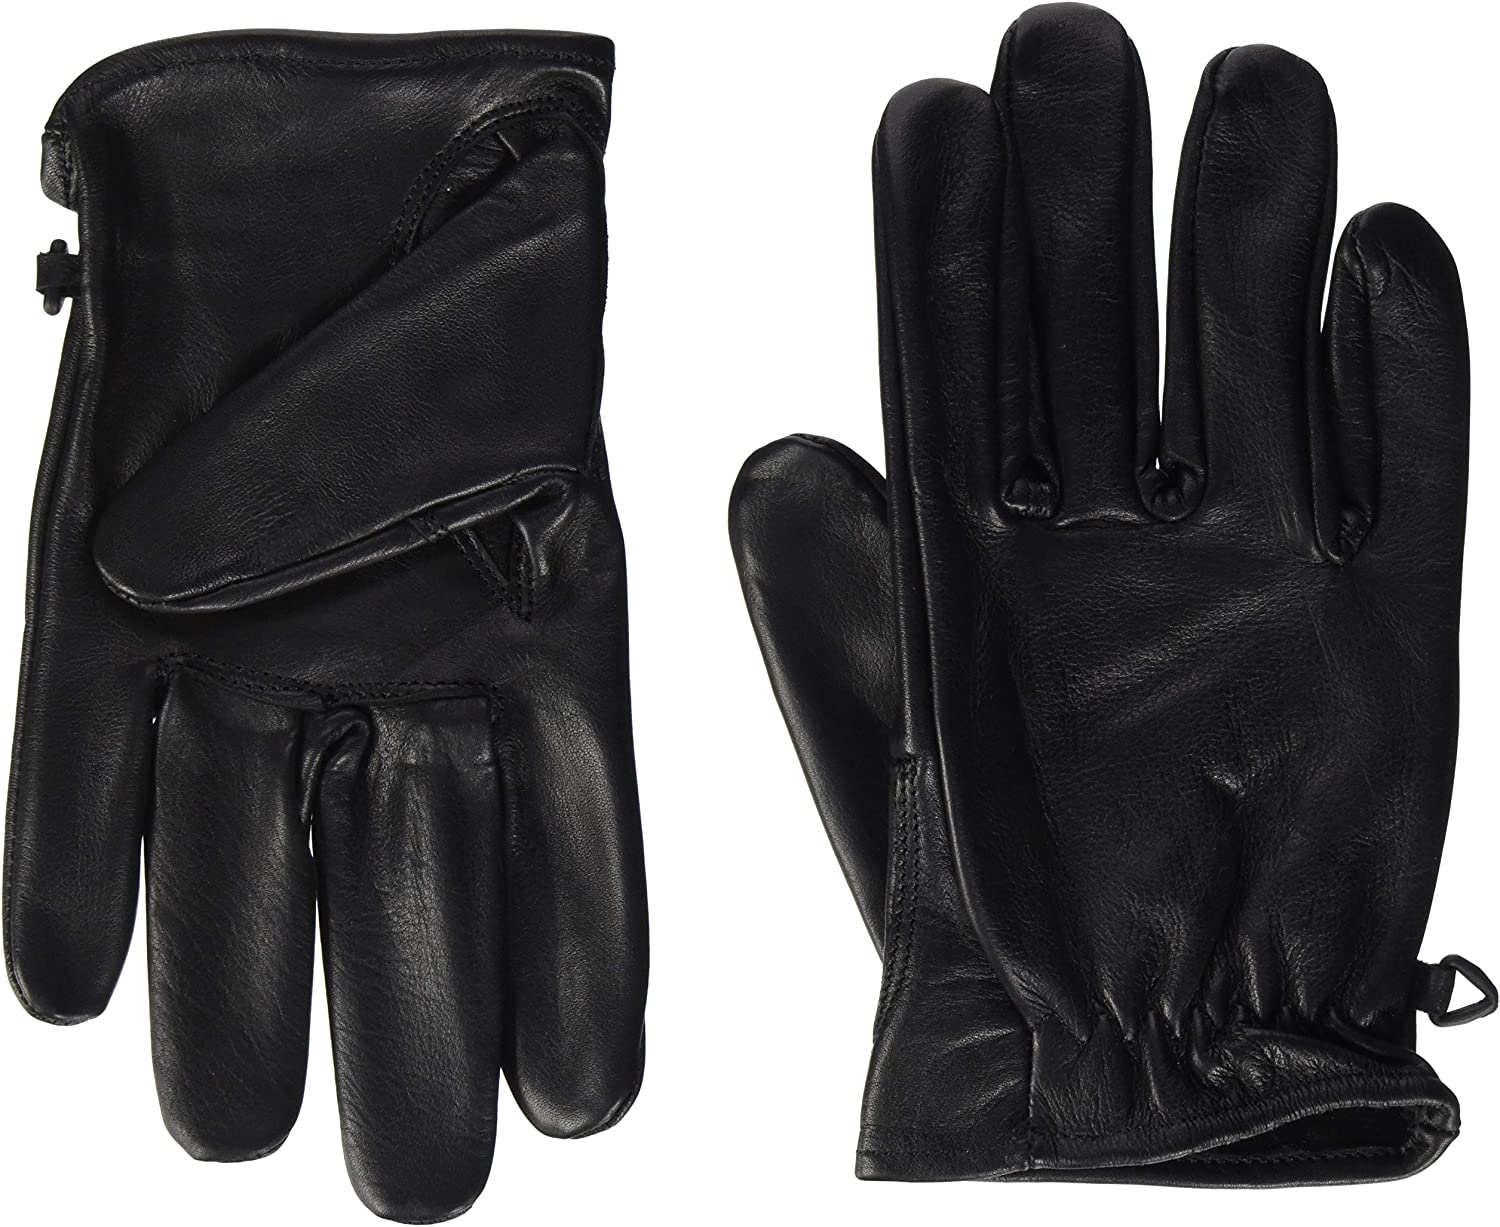 Motorcycle Gloves Leather Retro Old School Cafe Racer Chopper Black M Brown